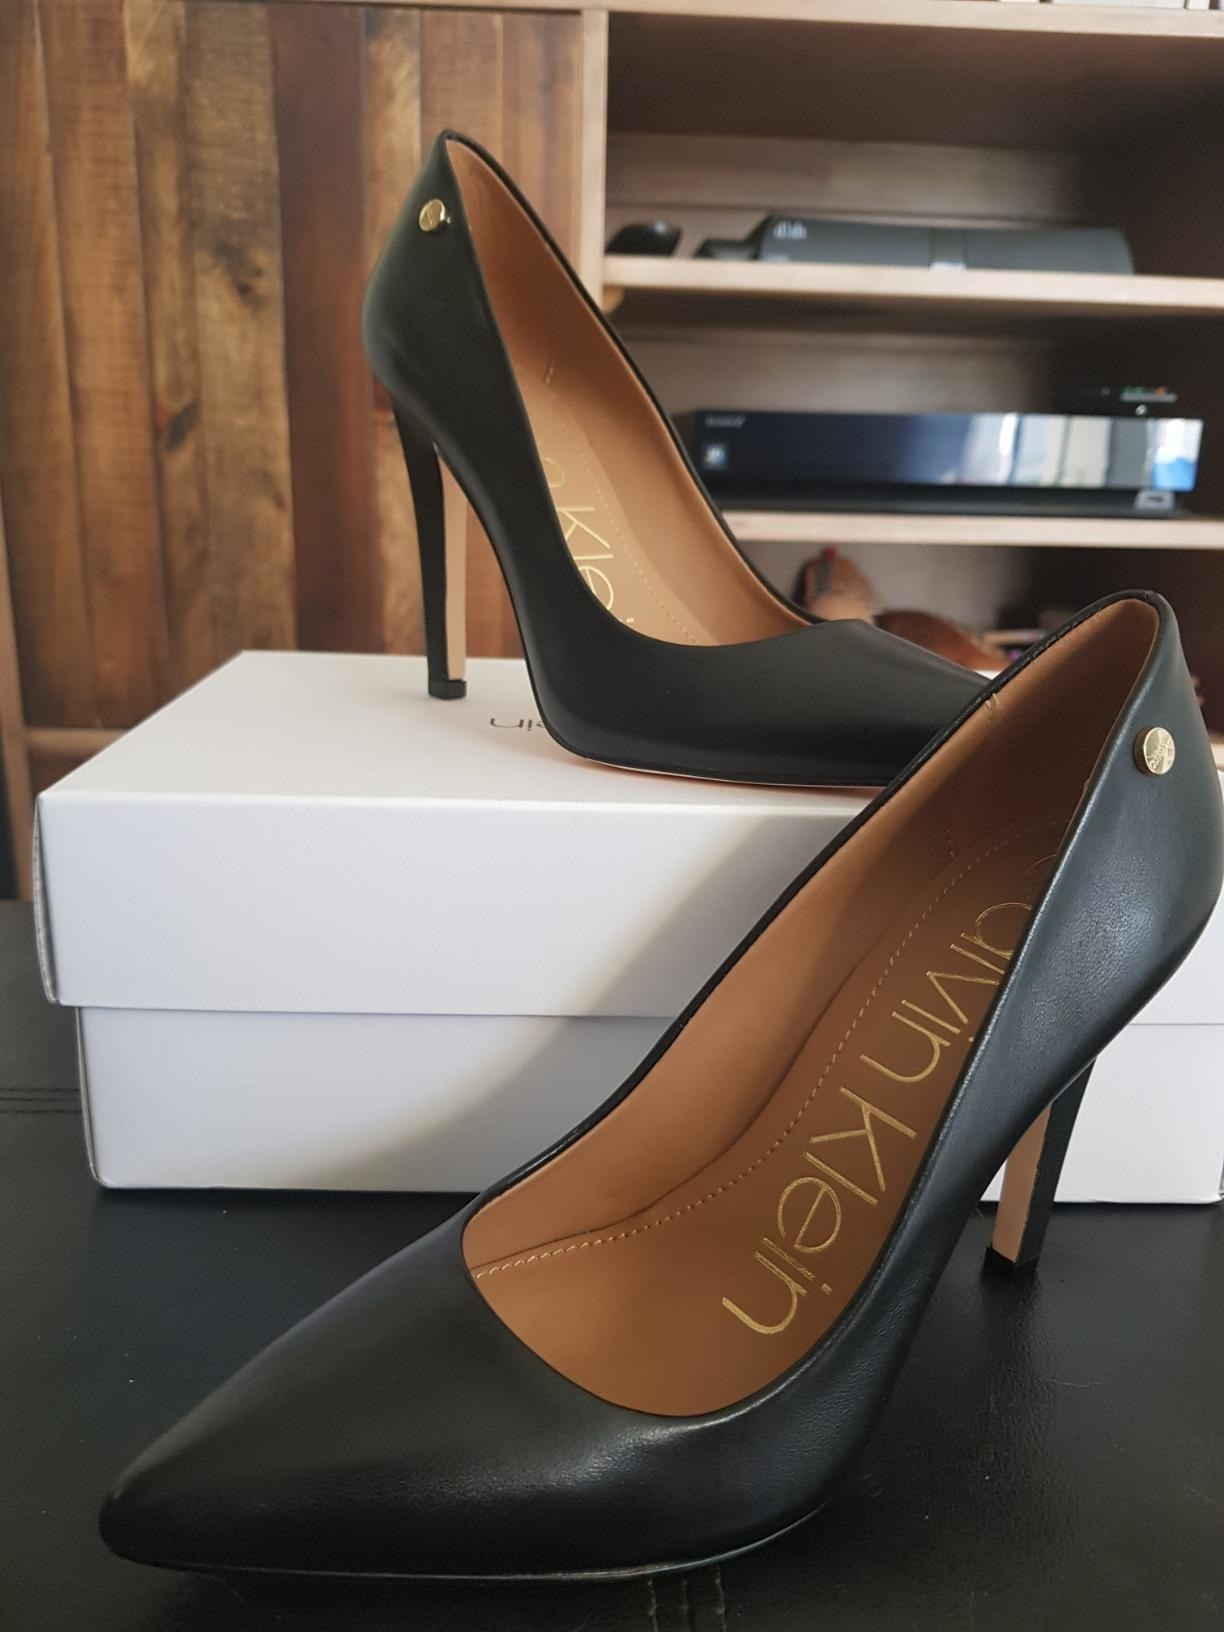 Reviewer photo of the black heels with a pointed toe sitting on top of and in front of the box